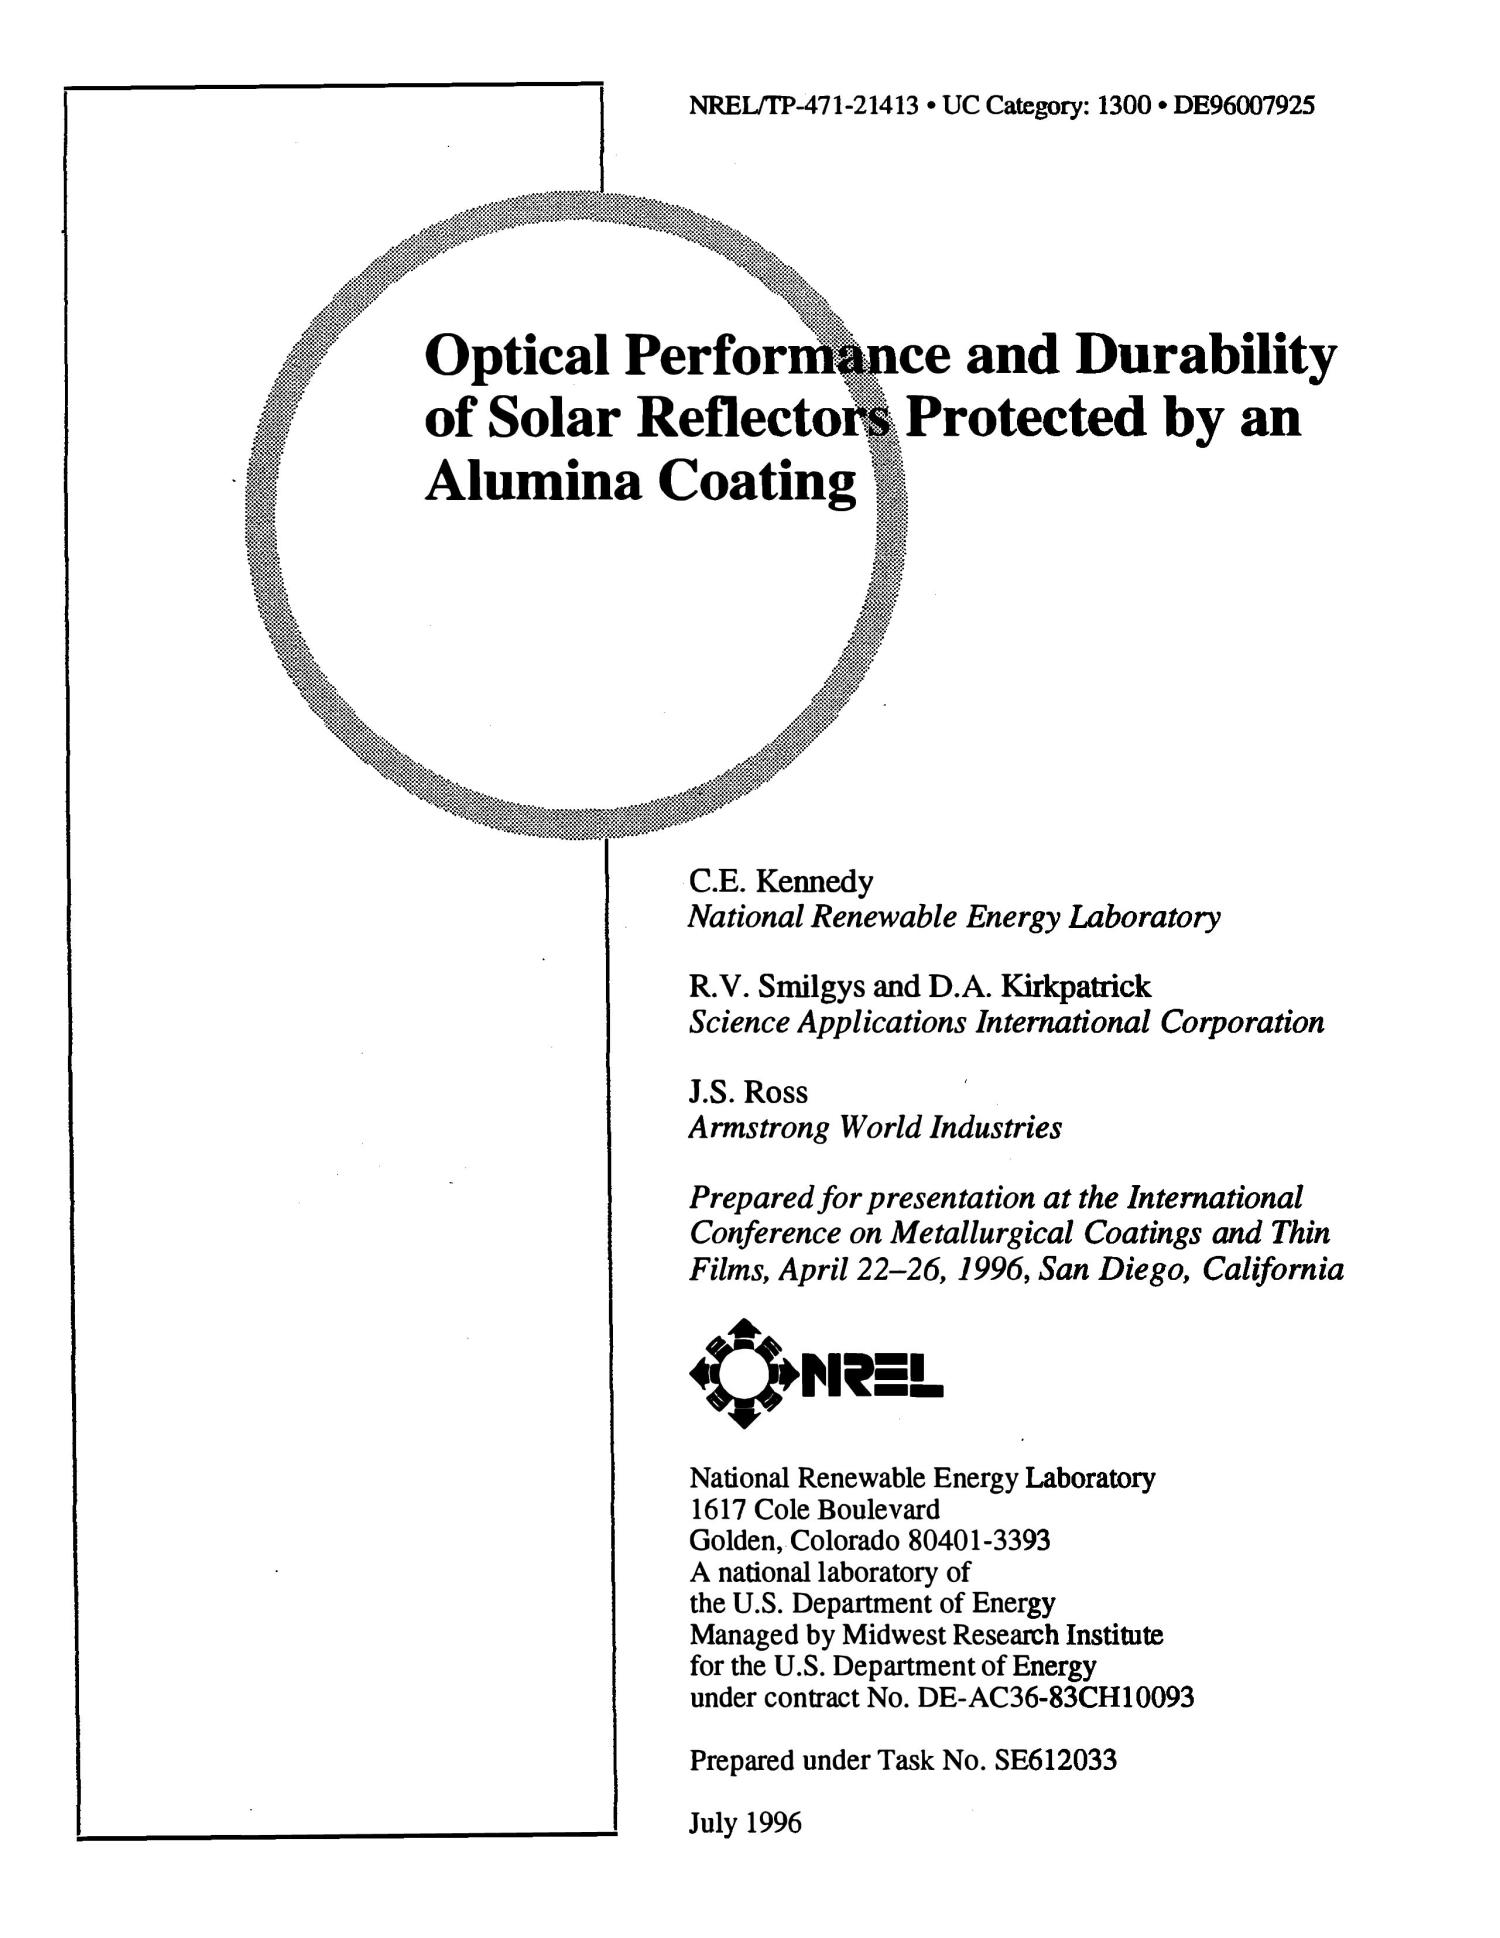 Optical performance and durability of solar reflectors protected by an alumina coating                                                                                                      [Sequence #]: 1 of 20